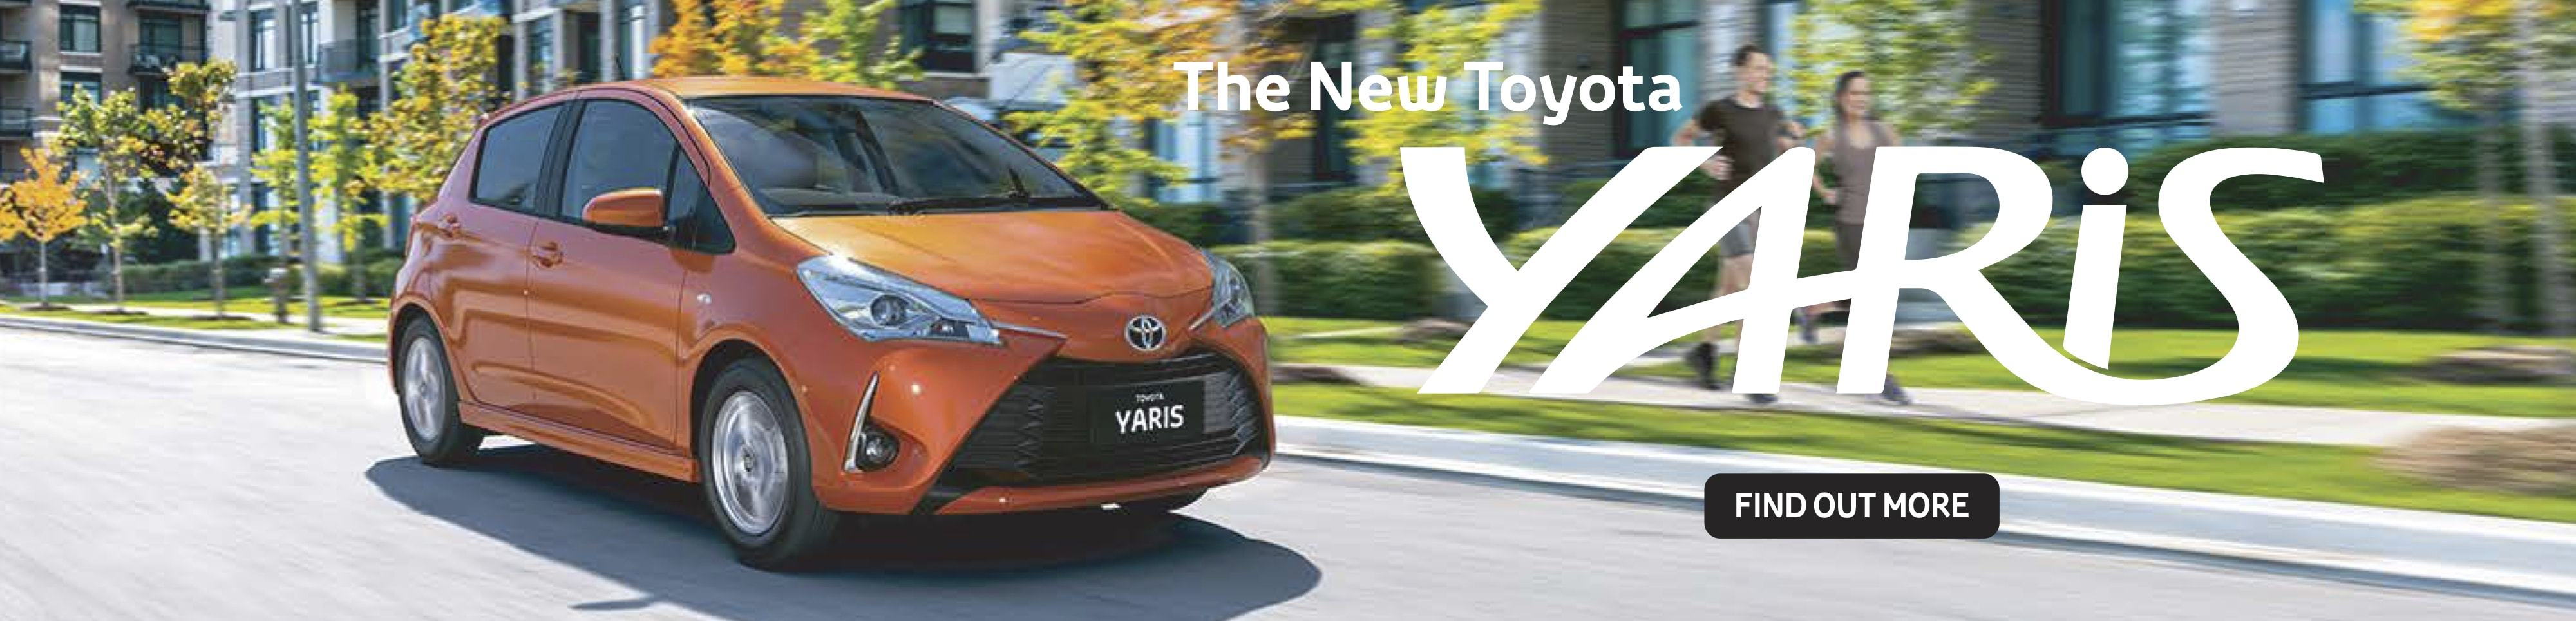 The All New Toyota Yaris